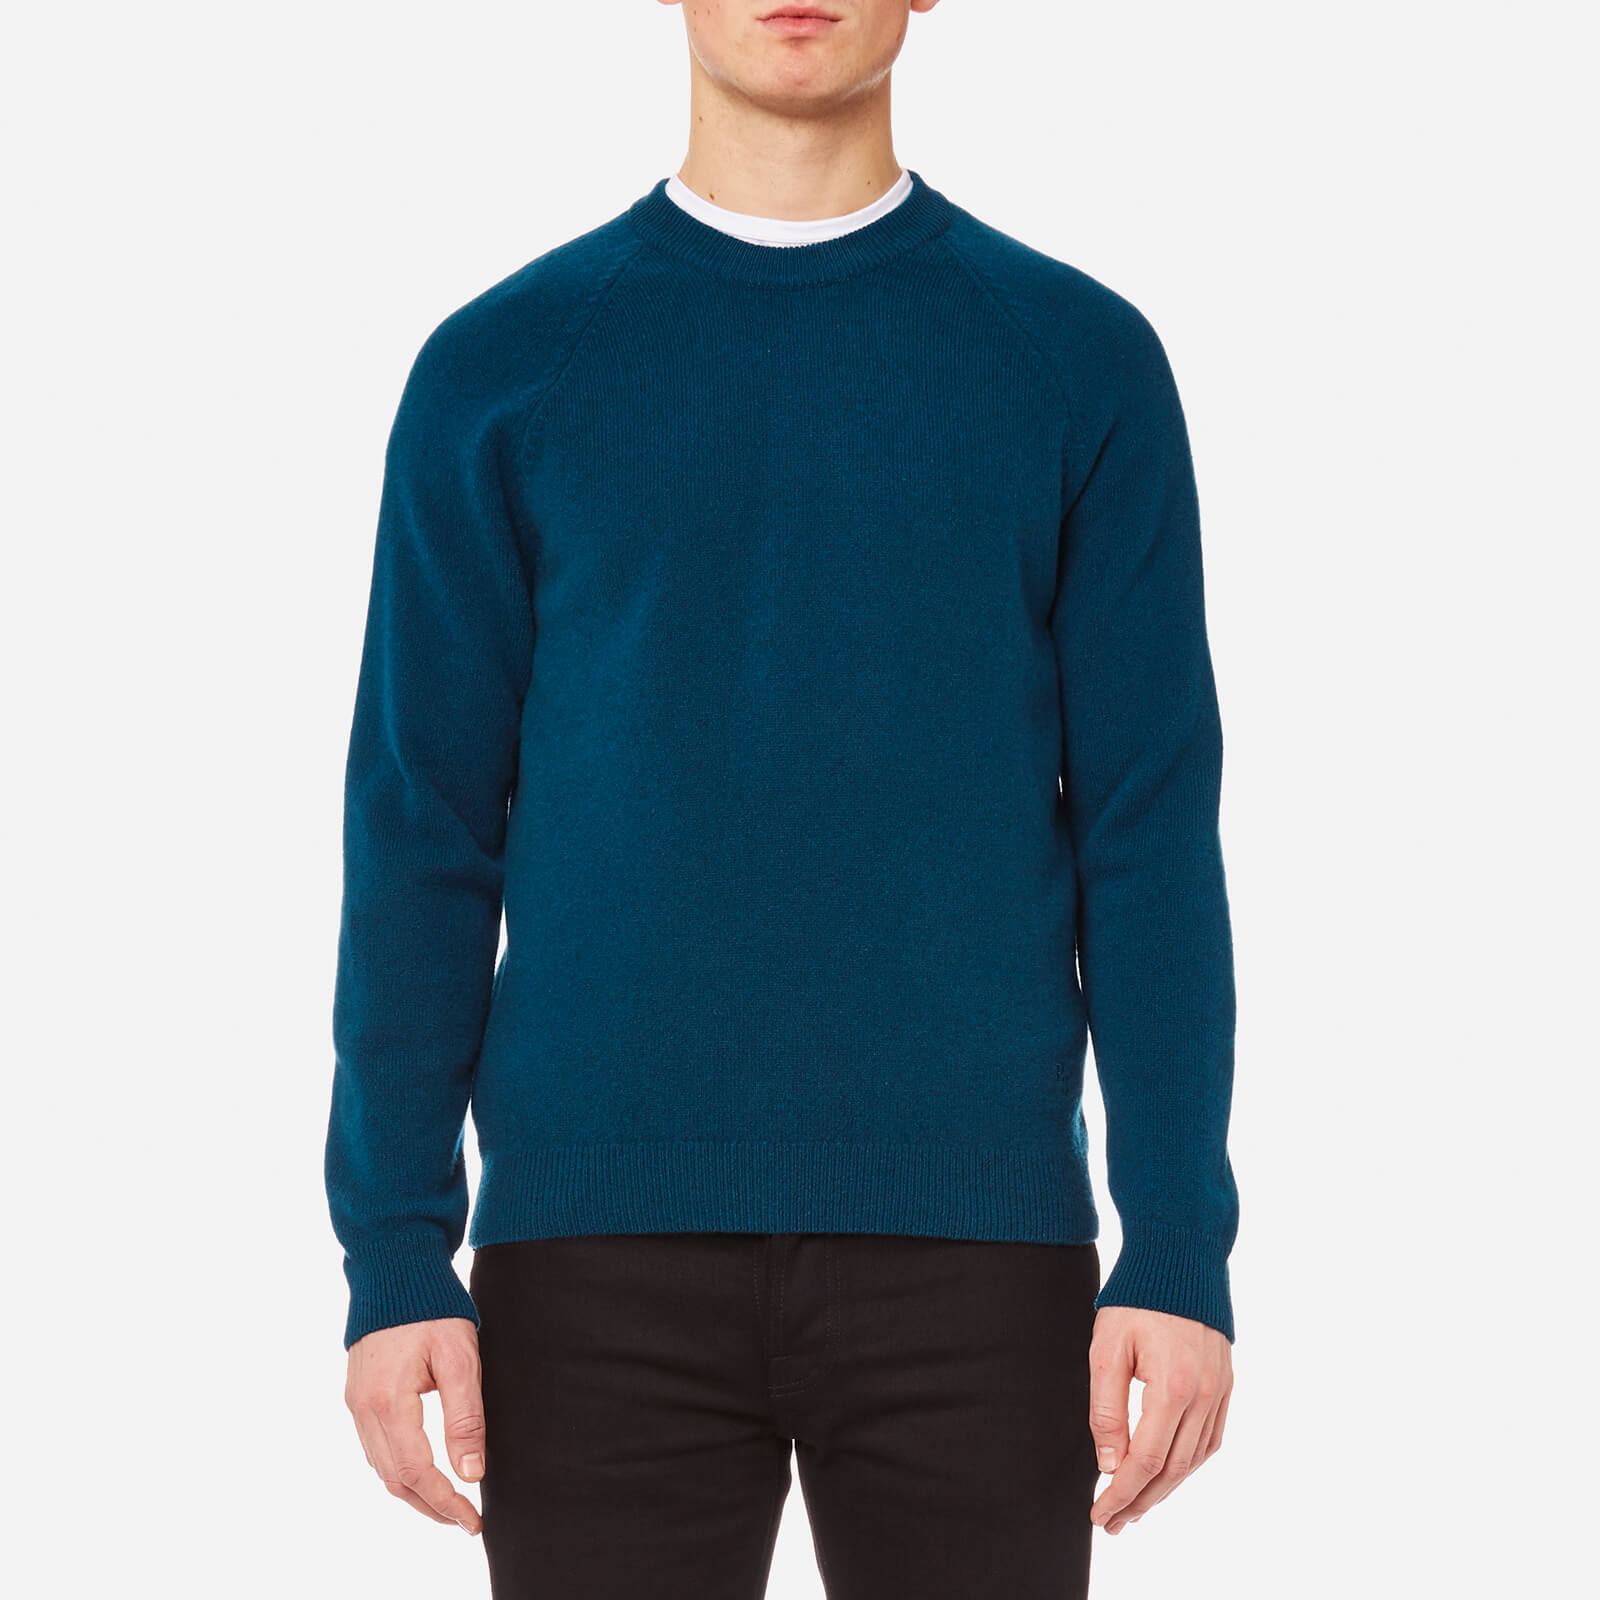 762335a6a78008 PS by Paul Smith Men's Heavy Merino Plain Knitted Jumper - Teal - Free UK  Delivery over £50